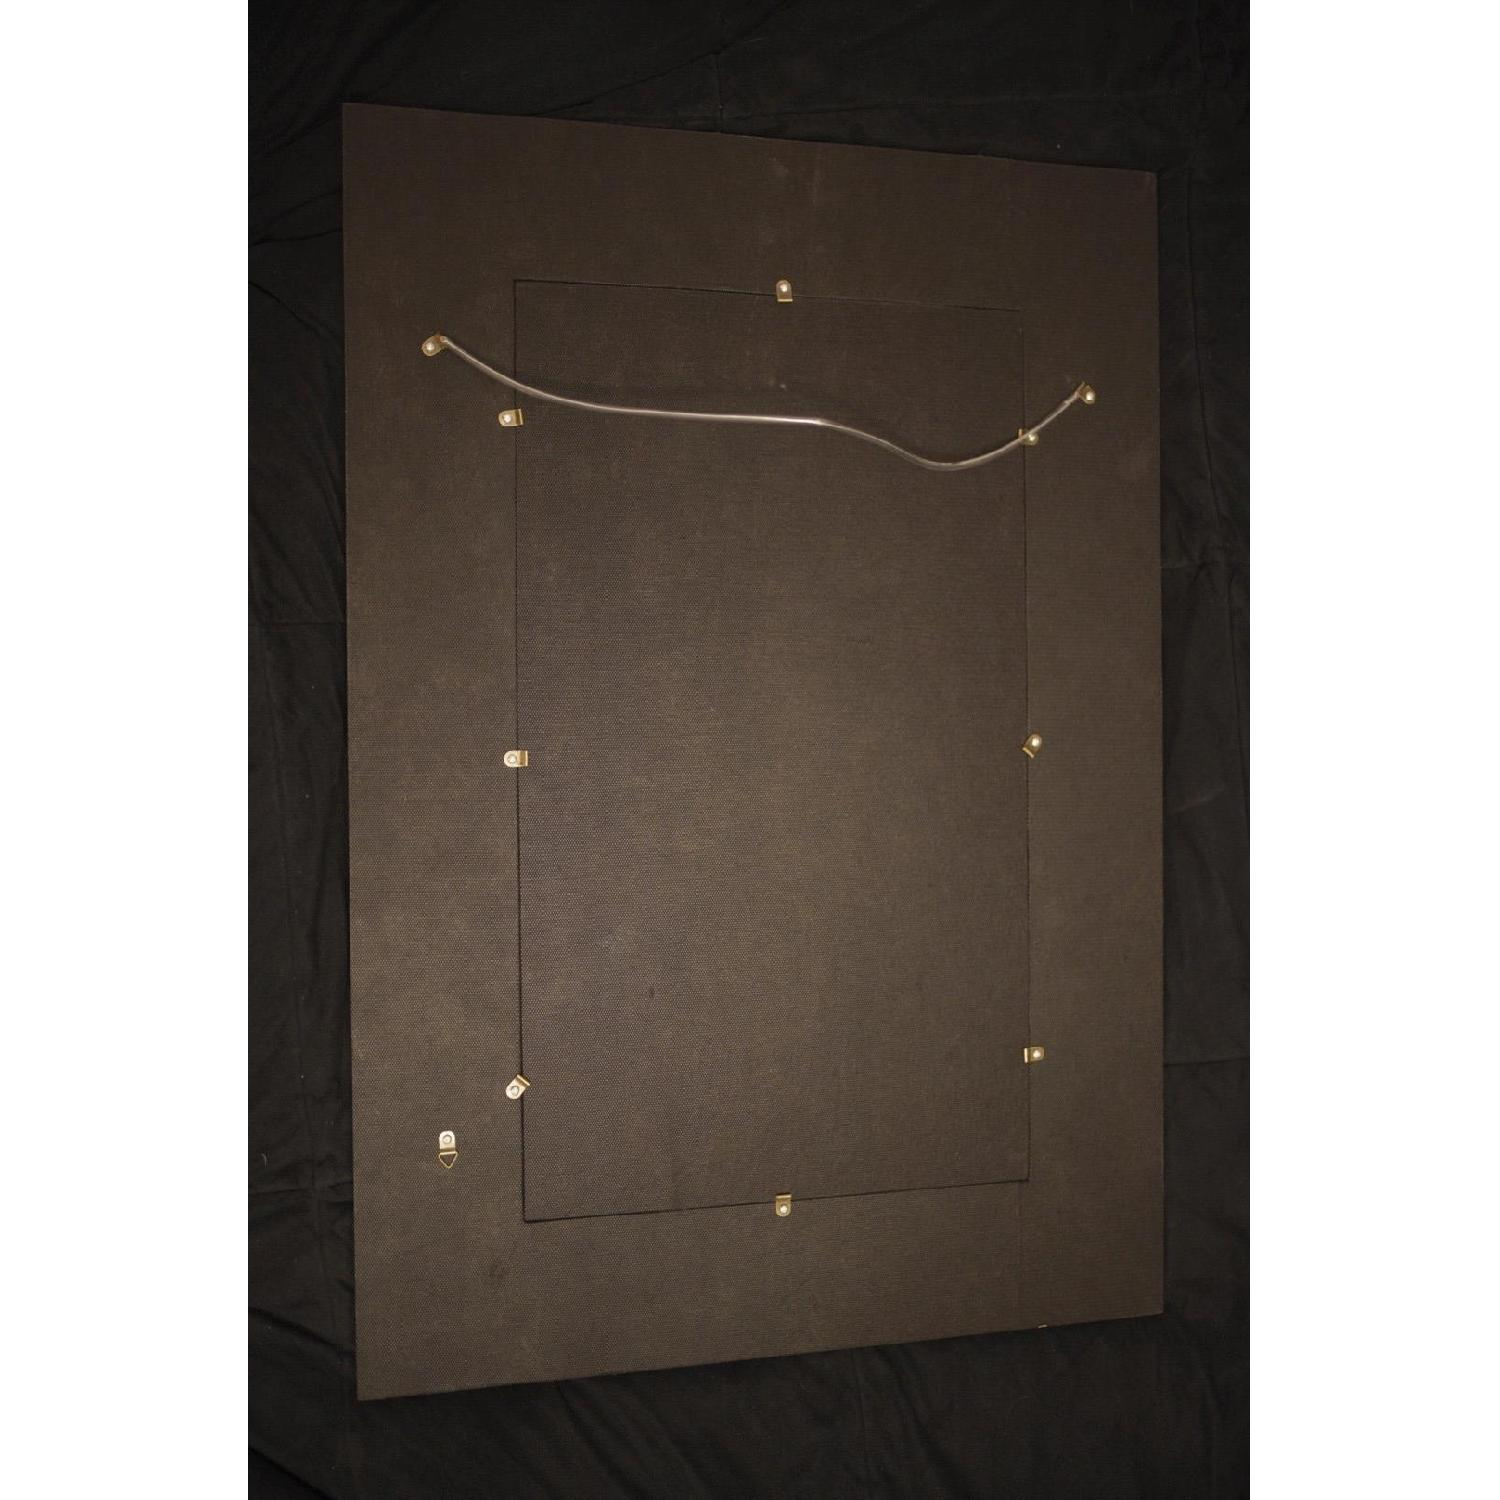 Ten Thousand Villages Gold Patterned Mirror-1